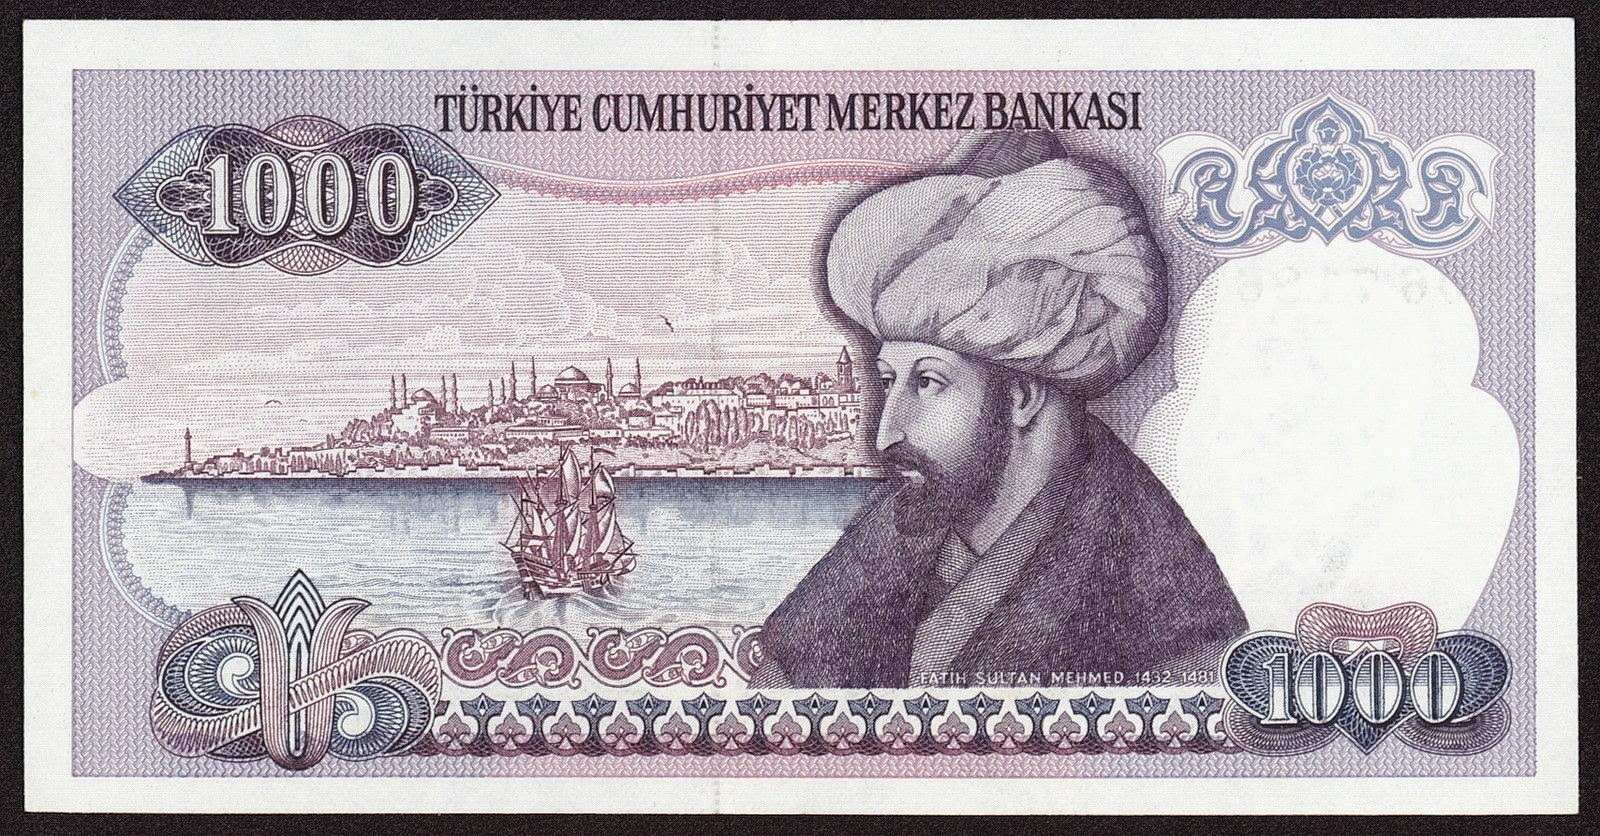 "Turkey currency money 1000 Turkish Lira ""Türk Lirasi"" note Fatih Sultan Mehmet Conqueror, view of Istanbul"